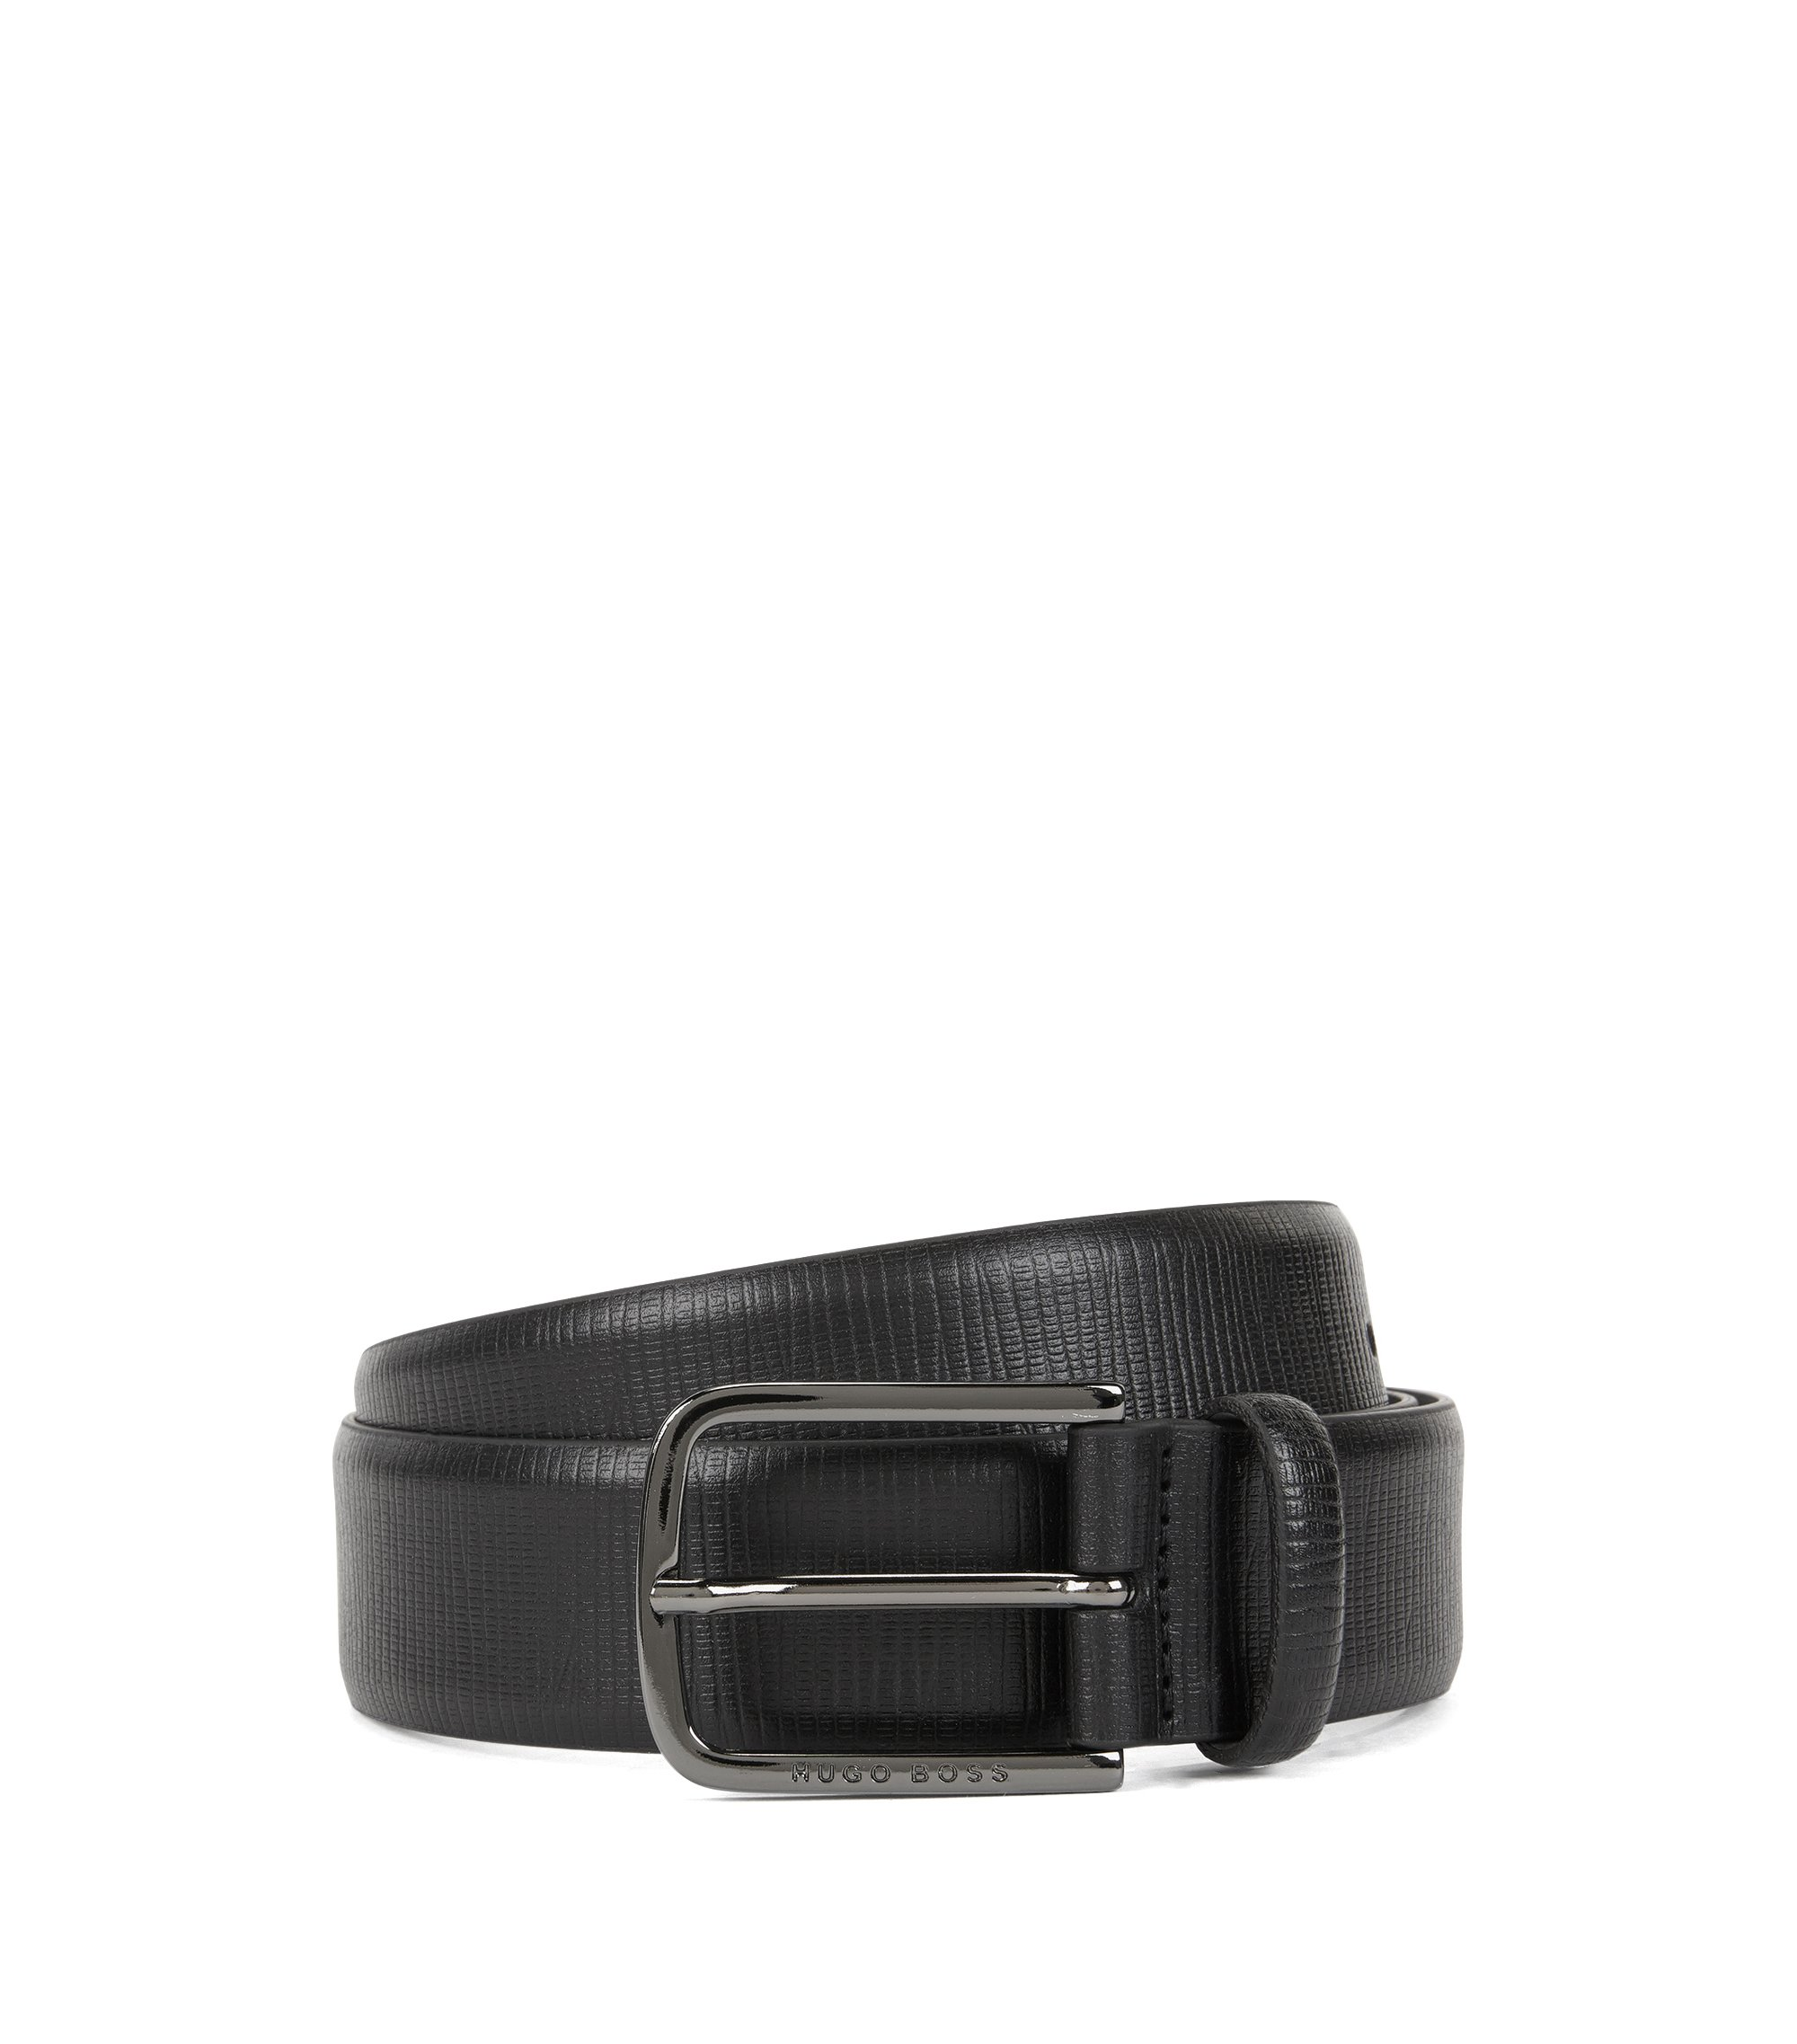 Embossed leather belt with gunmetal hardware, Black